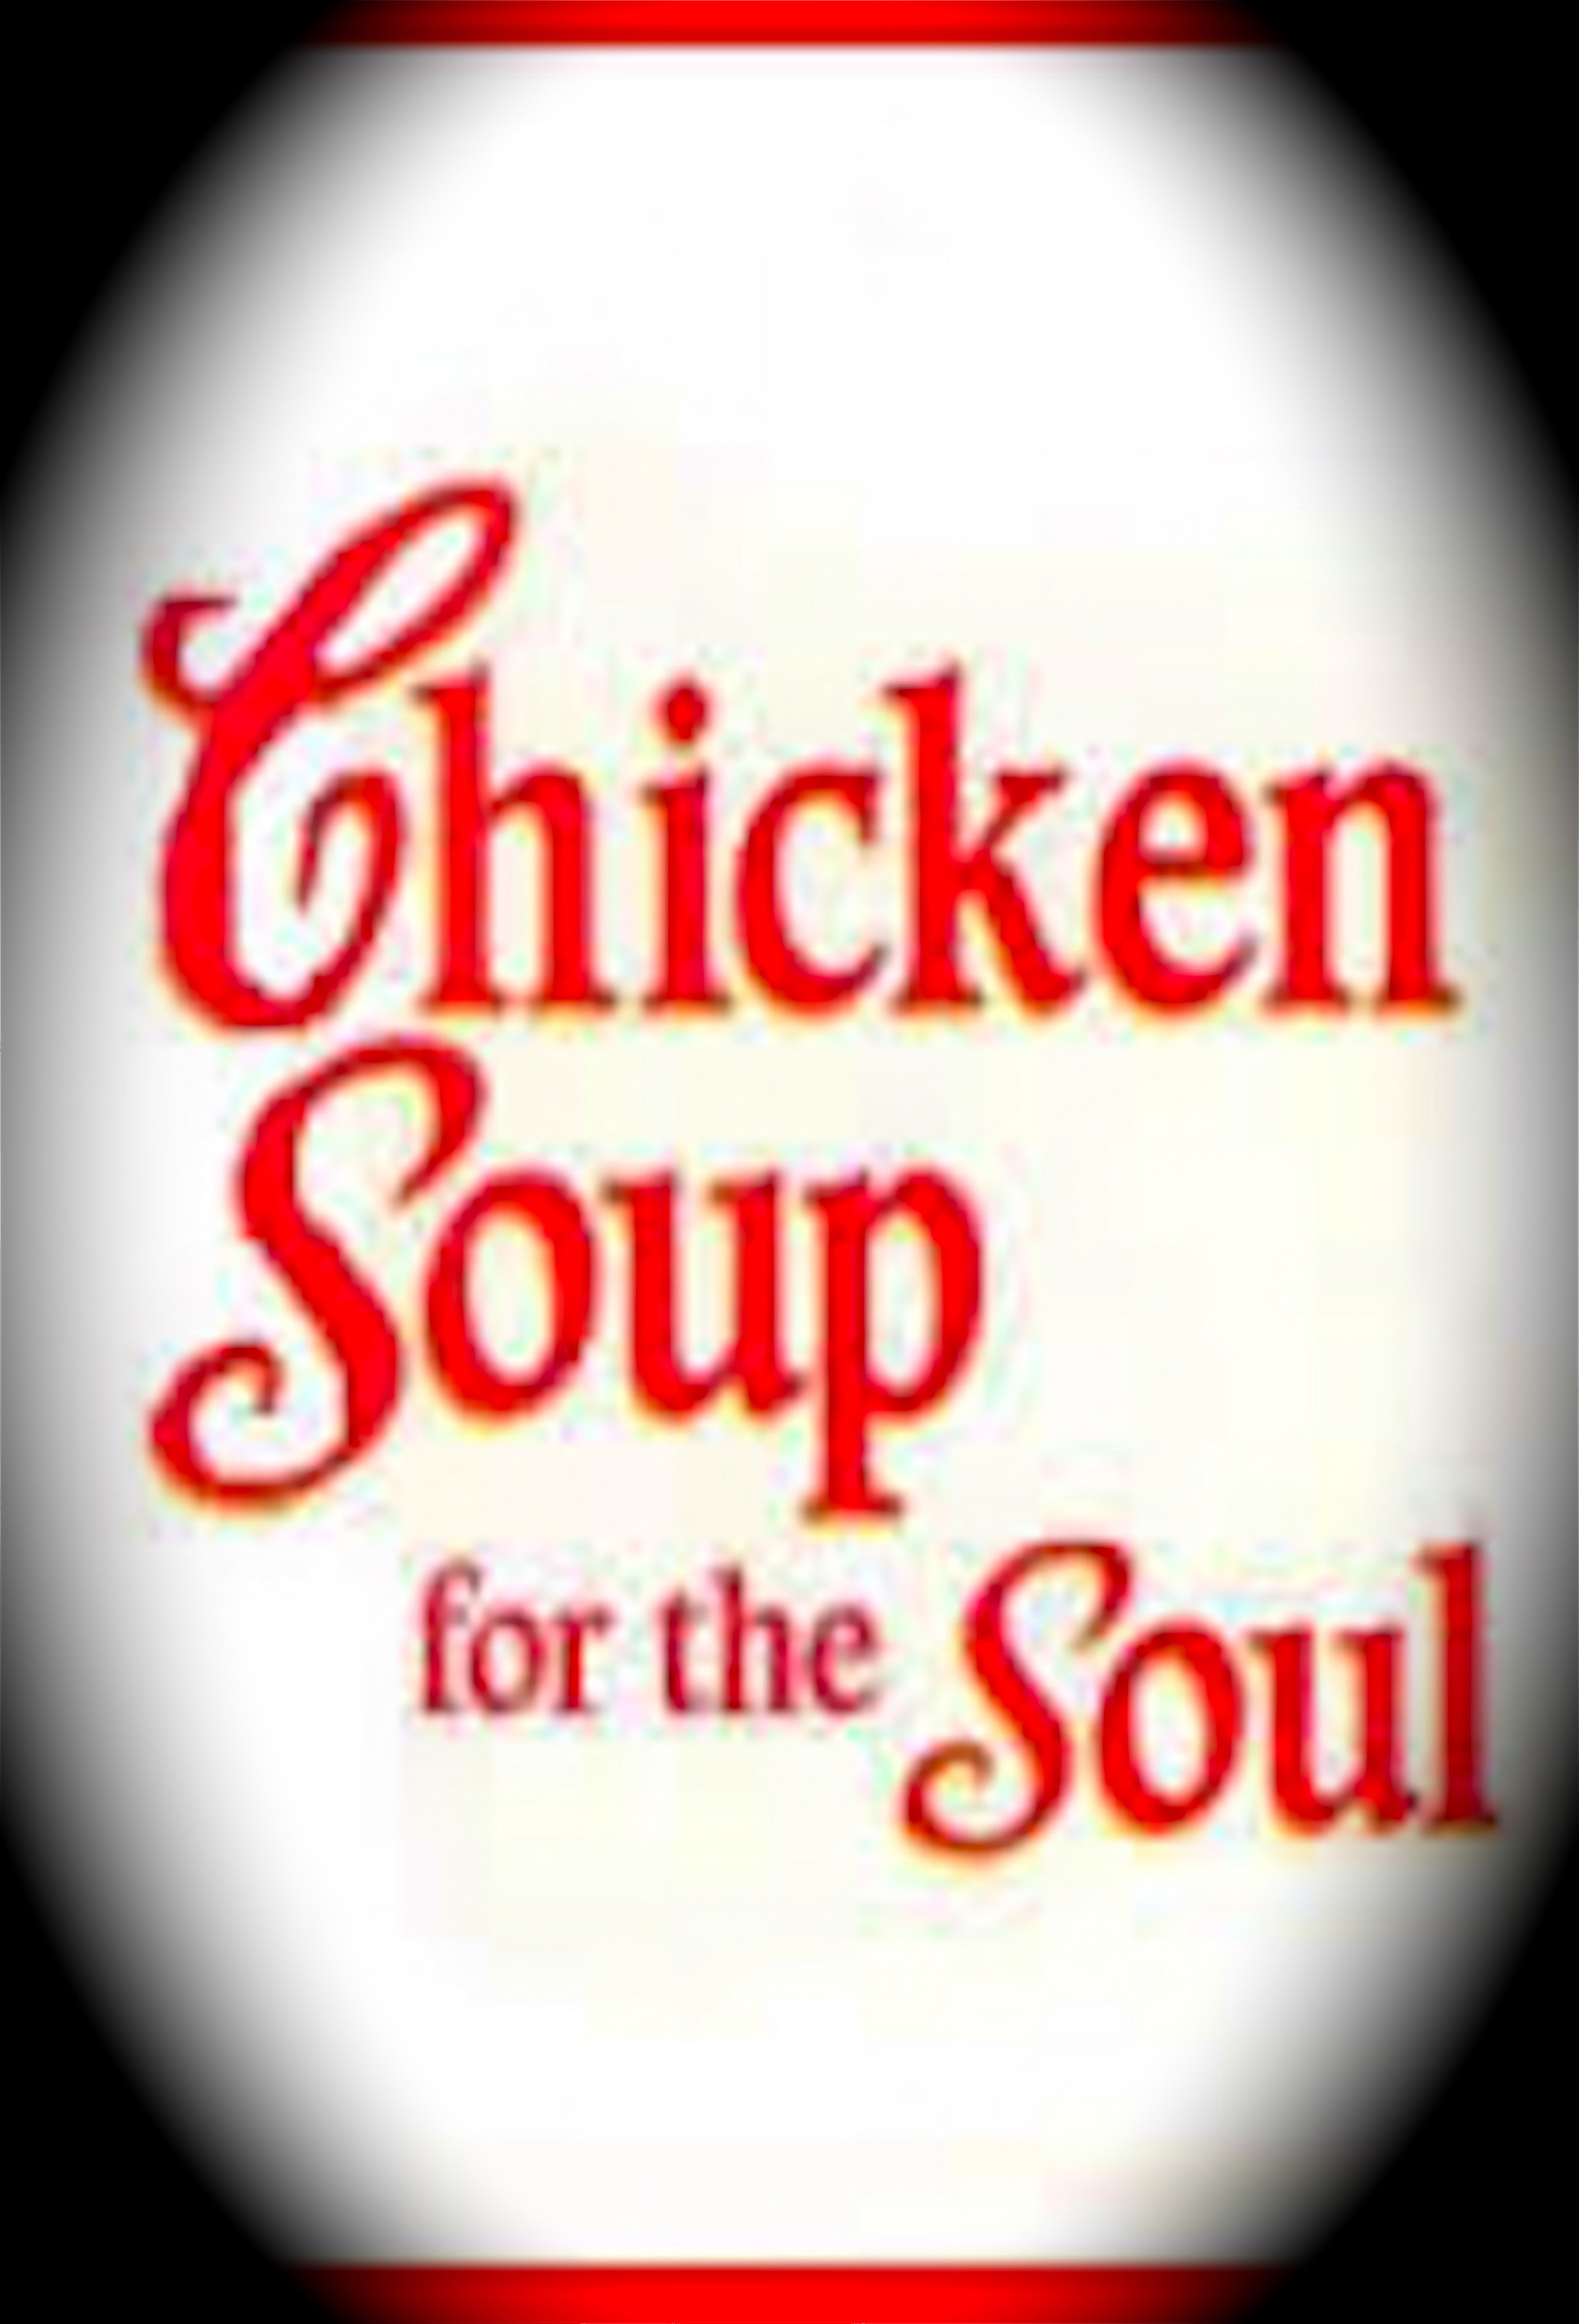 Chicken Soup for the Soul (TV Series 1999–2000) - IMDb